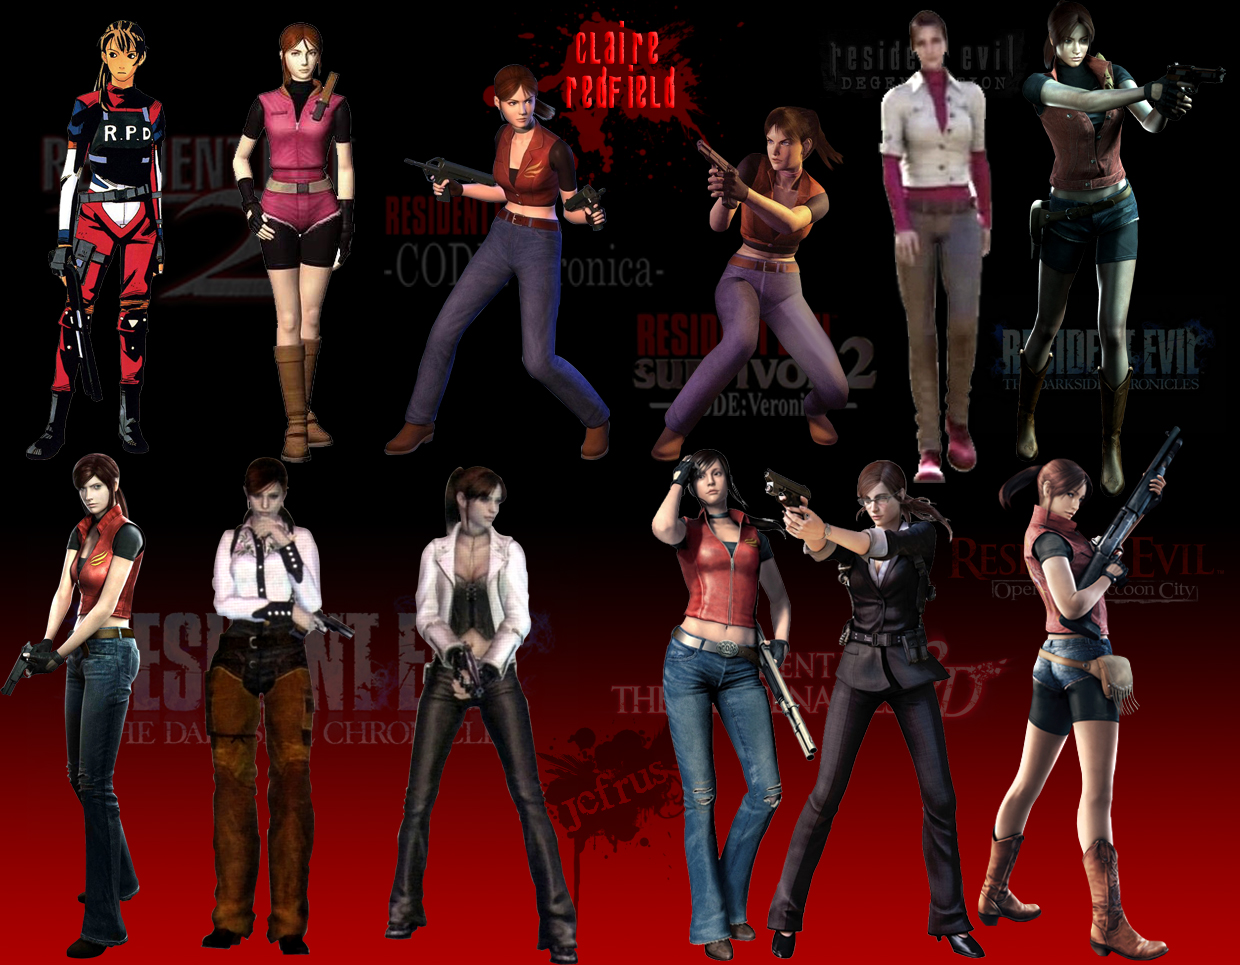 efrajoey1Wallpaper Claire Redfield 1240x965